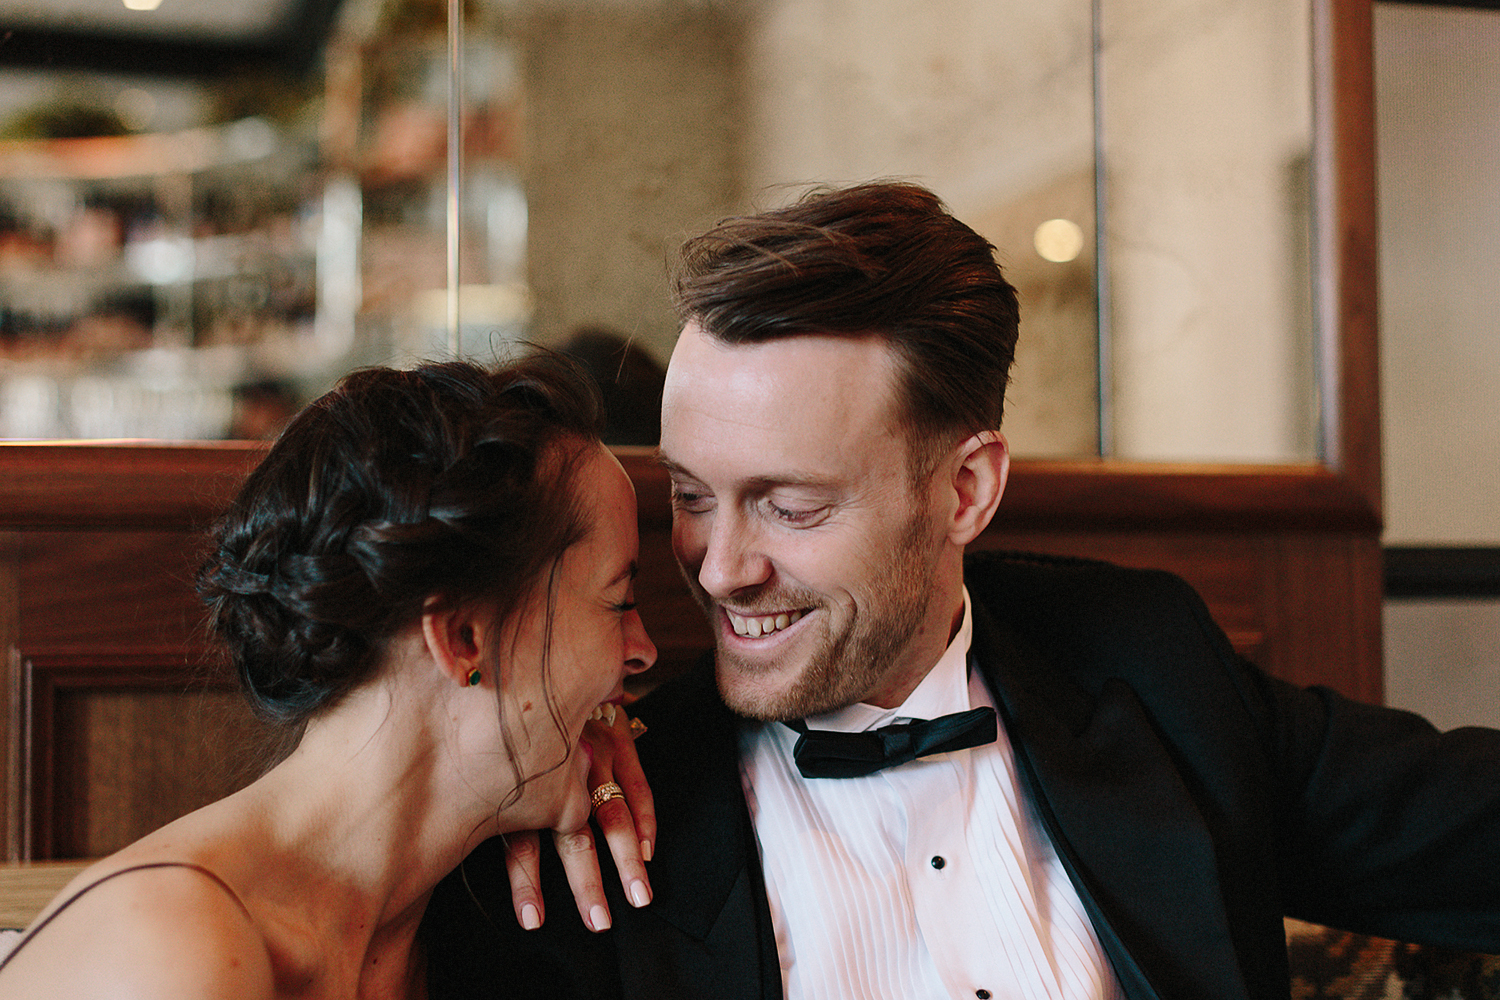 elopement-toronto-city-hall-wedding-documentary-wedding-photography-ryanne-hollies-photography-broadview-hotel-wedding-toronto-best-weding-photographer-hotel-lobby-bar-details-scottish-wedding-badass-cool-couple-editorial-laughing.jpg